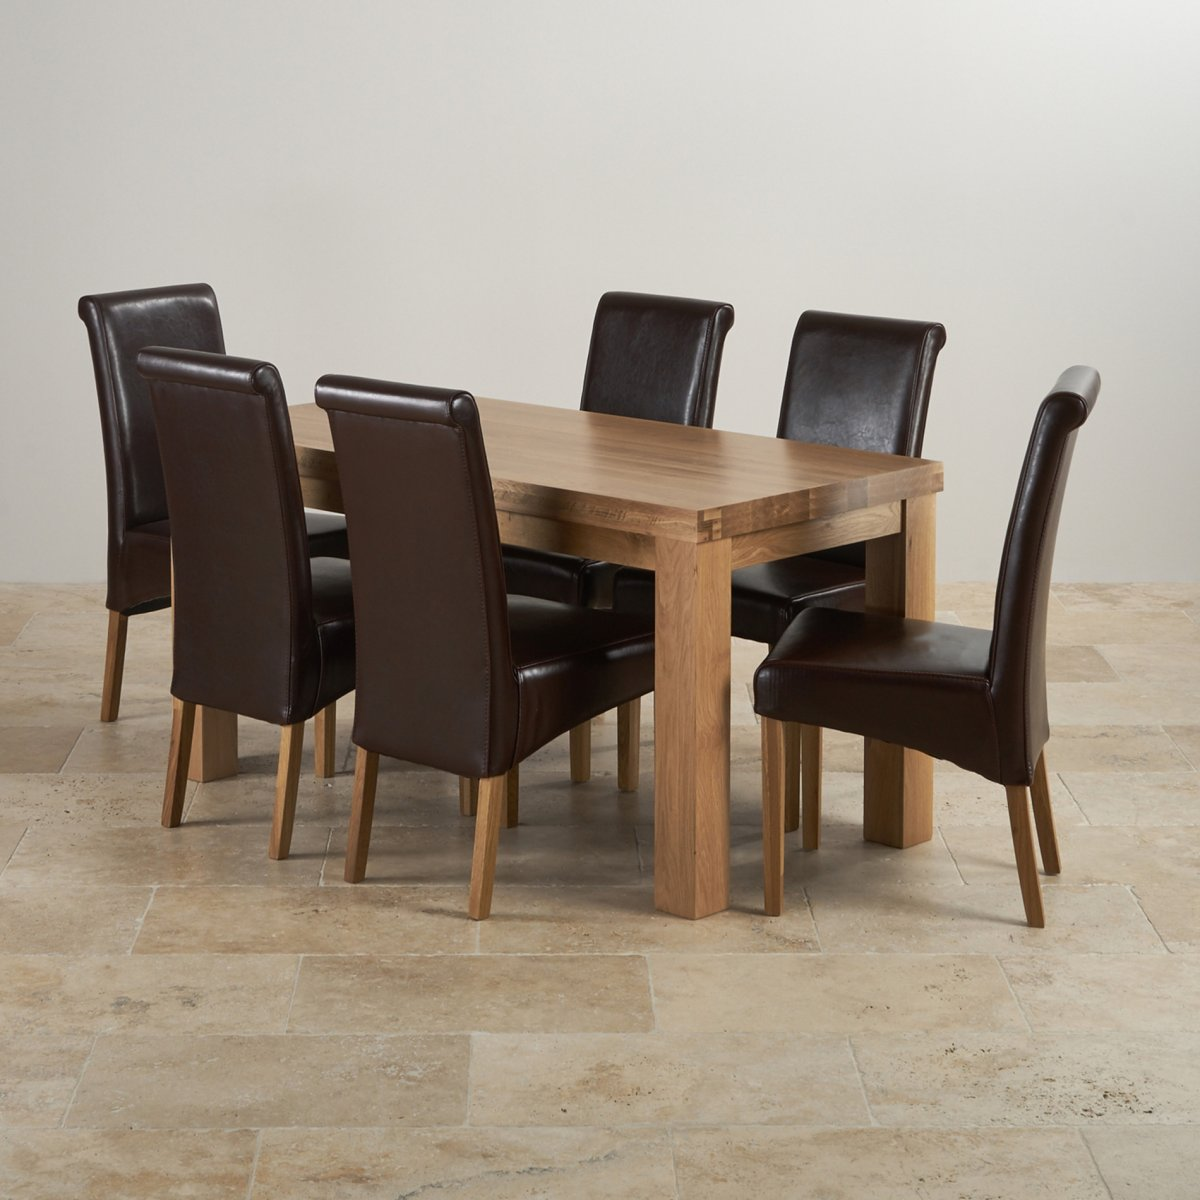 Contemporary Dining Table Chairs: Contemporary Dining Set In Oak: Table + 6 Brown Leather Chairs